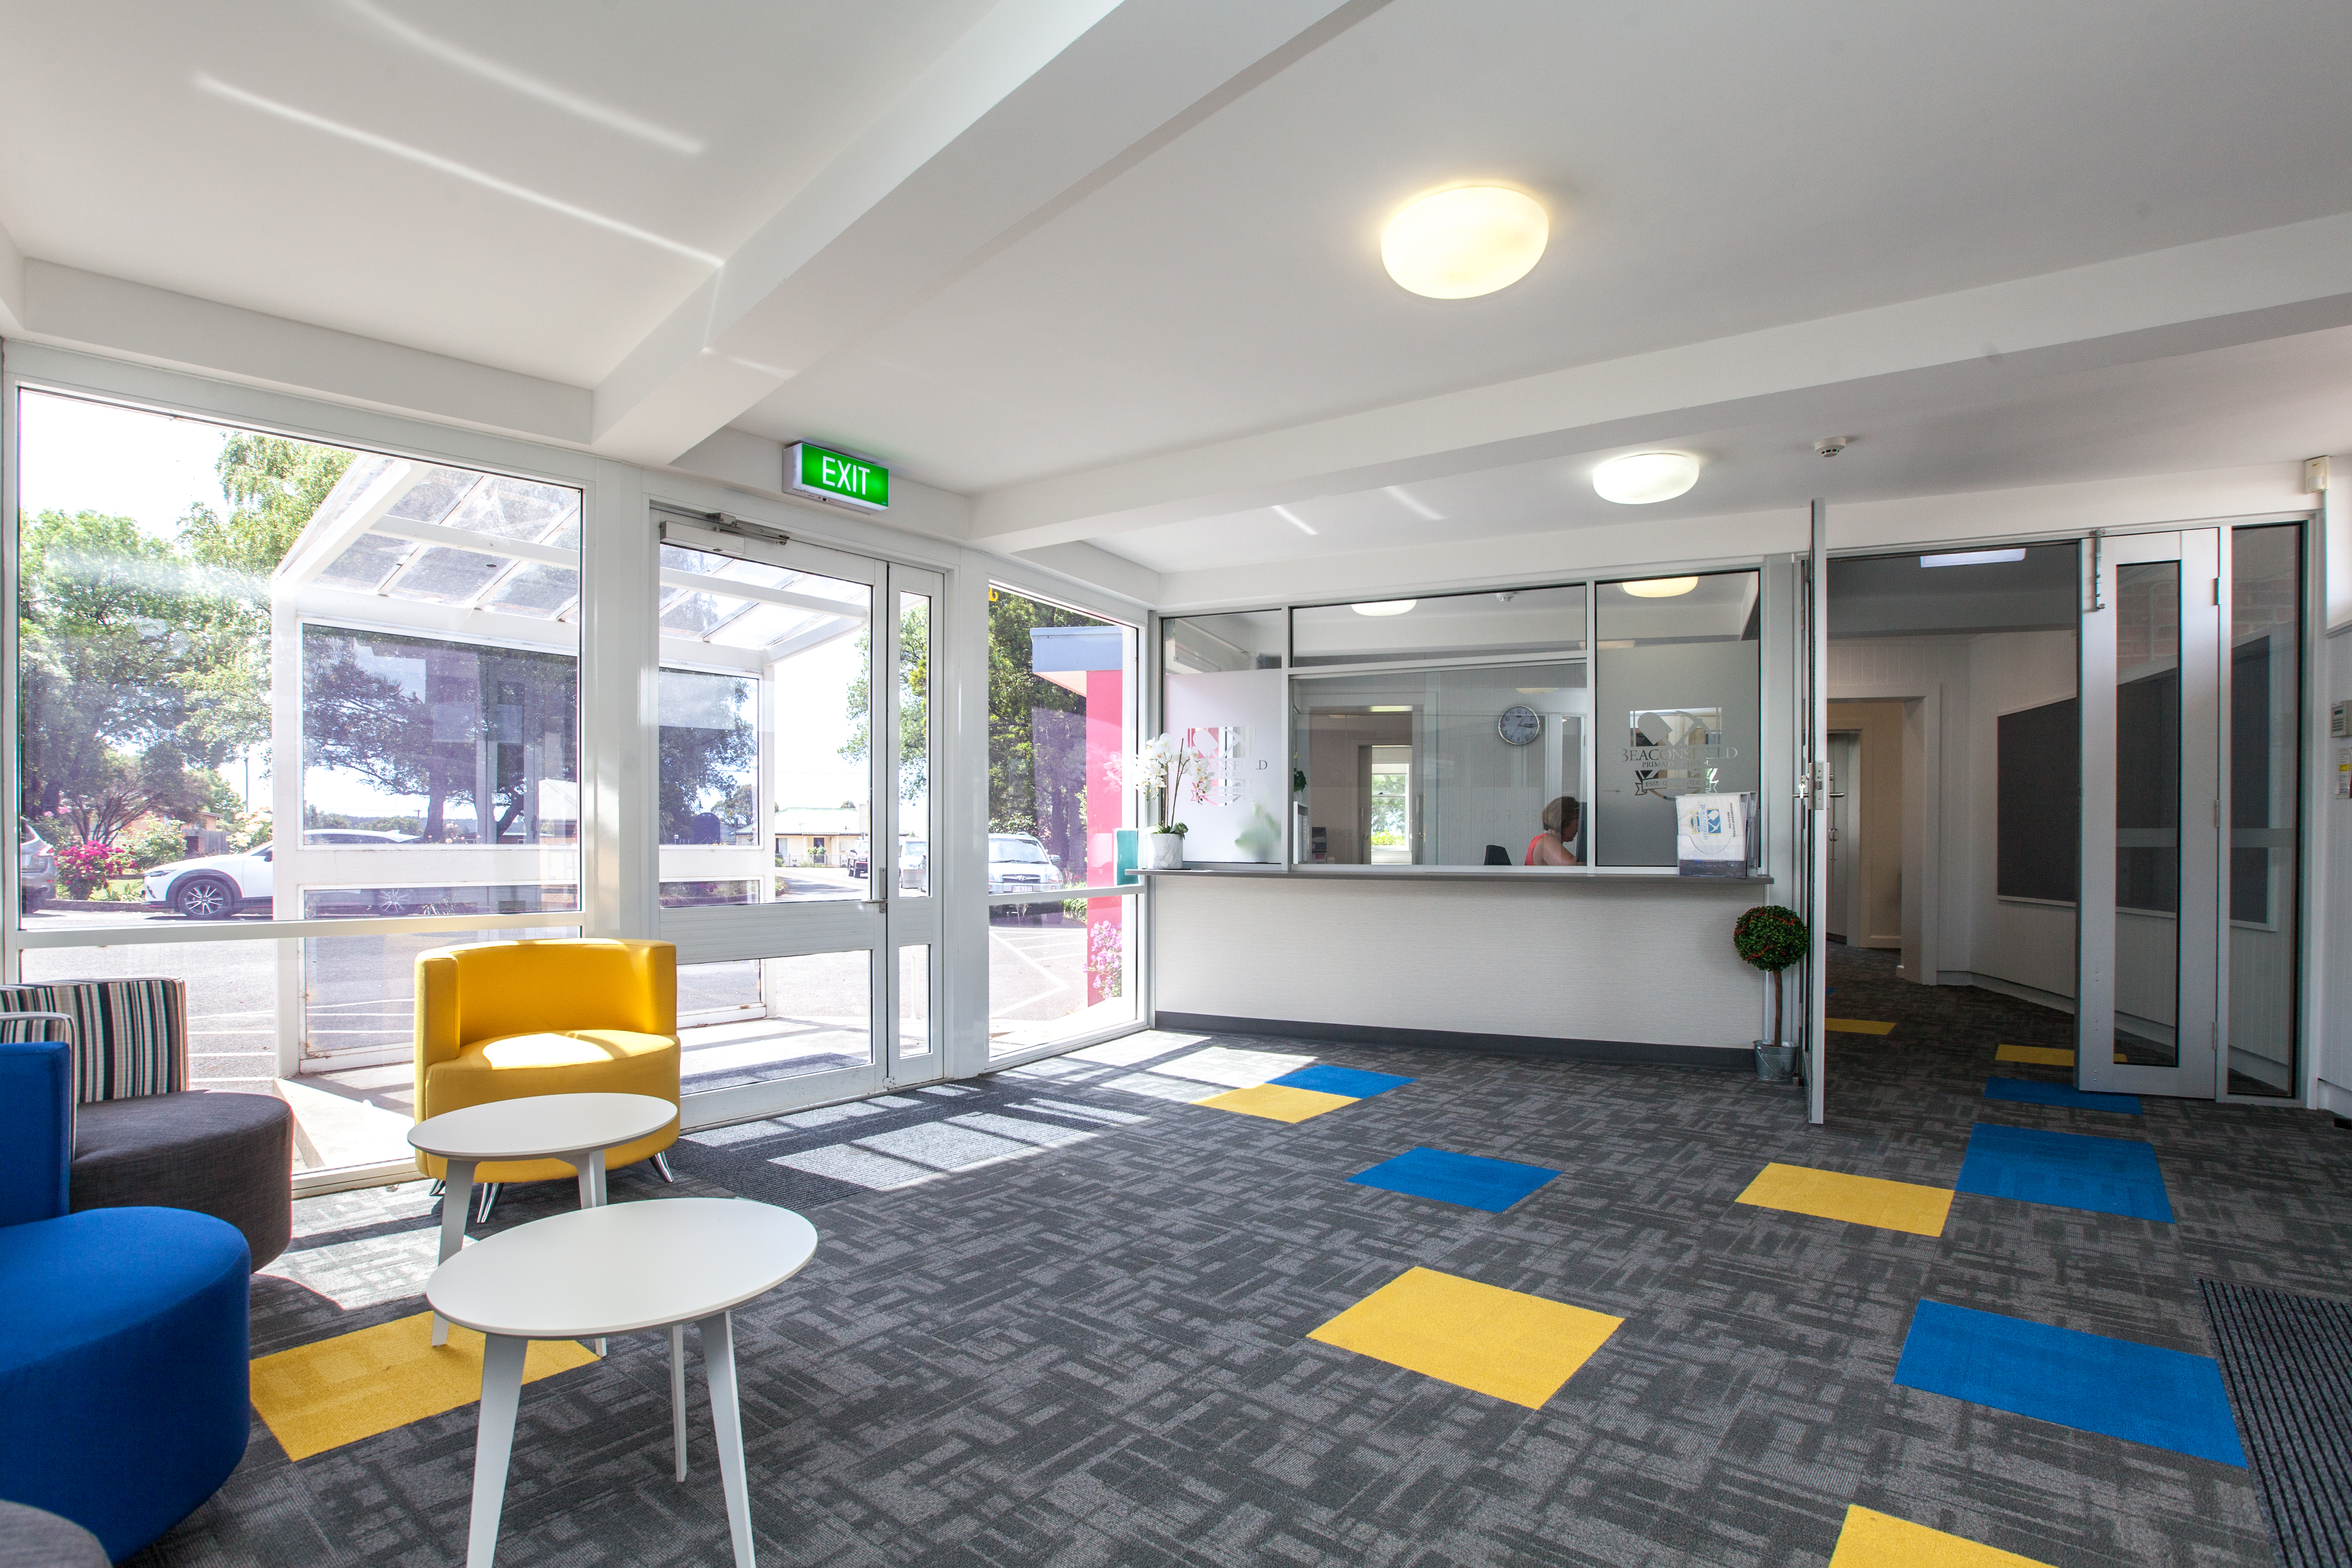 ASCOT_Beaconsfield Primary_HD-2